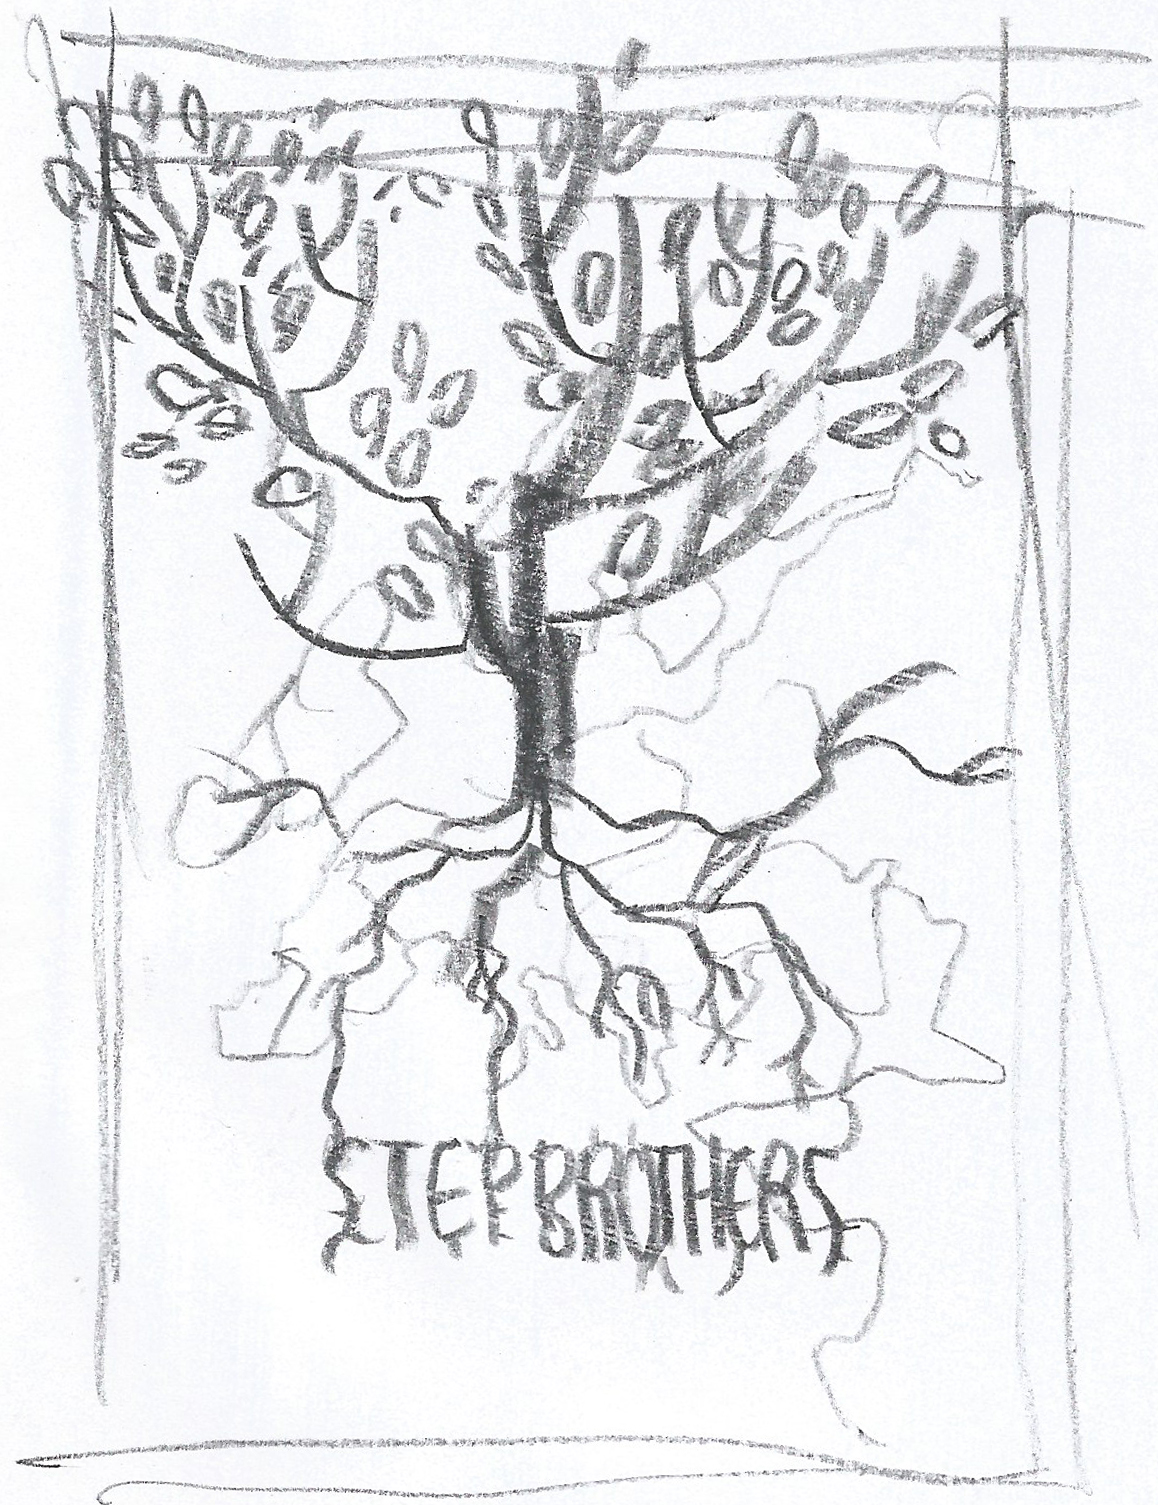 initial rough concept for pitch cover (right). The different origins of the siblings united by an absent, nomadic father grounded the idea of using a stylized genealogical tree to introduce the protagonists.